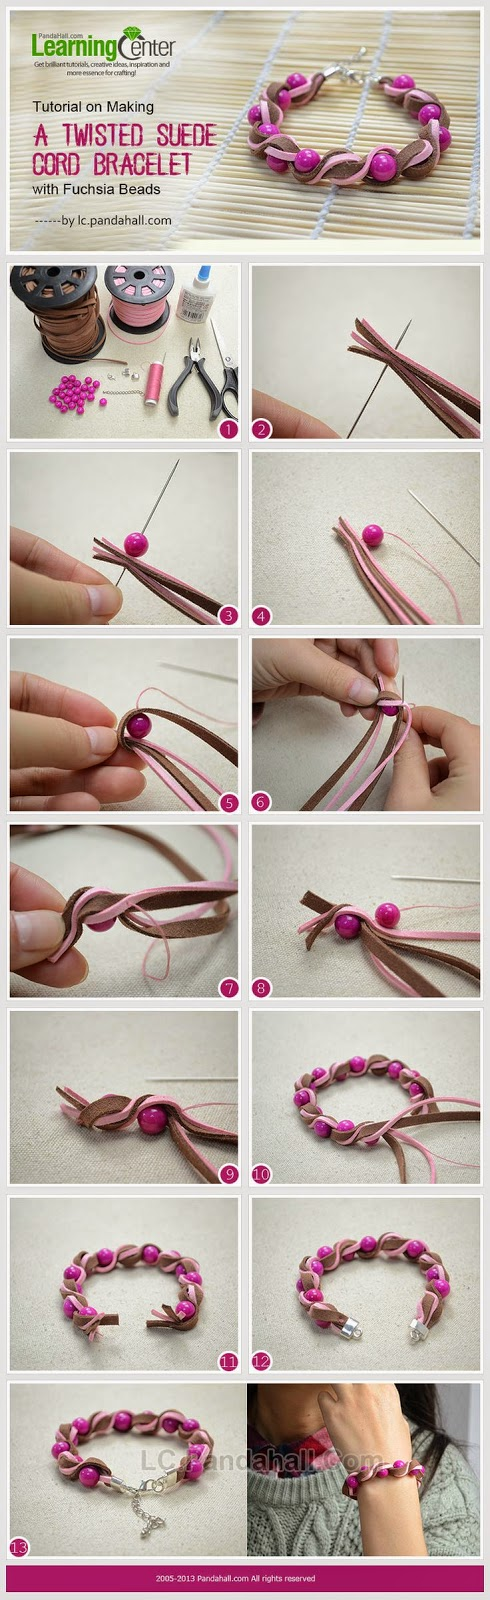 Twisted Suede Cord Bracelet with Fuchsia Beads |Gunadesign Handmade Jewelry and Fashion Barn